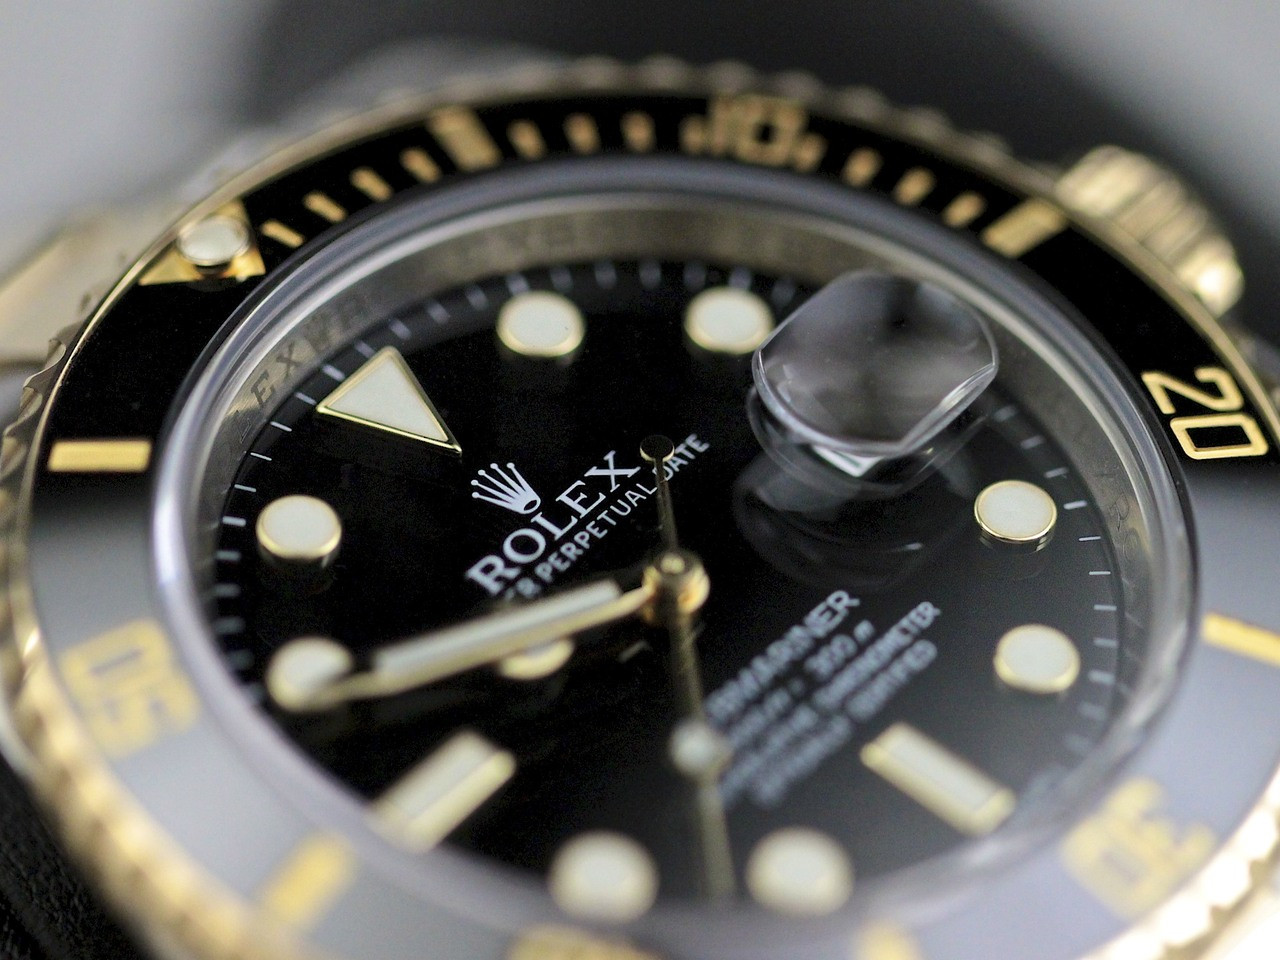 Dial Detail - Rolex Watch Submariner Steel and Gold 116613 - www. Legendoftime.com - Chicago Watch Center